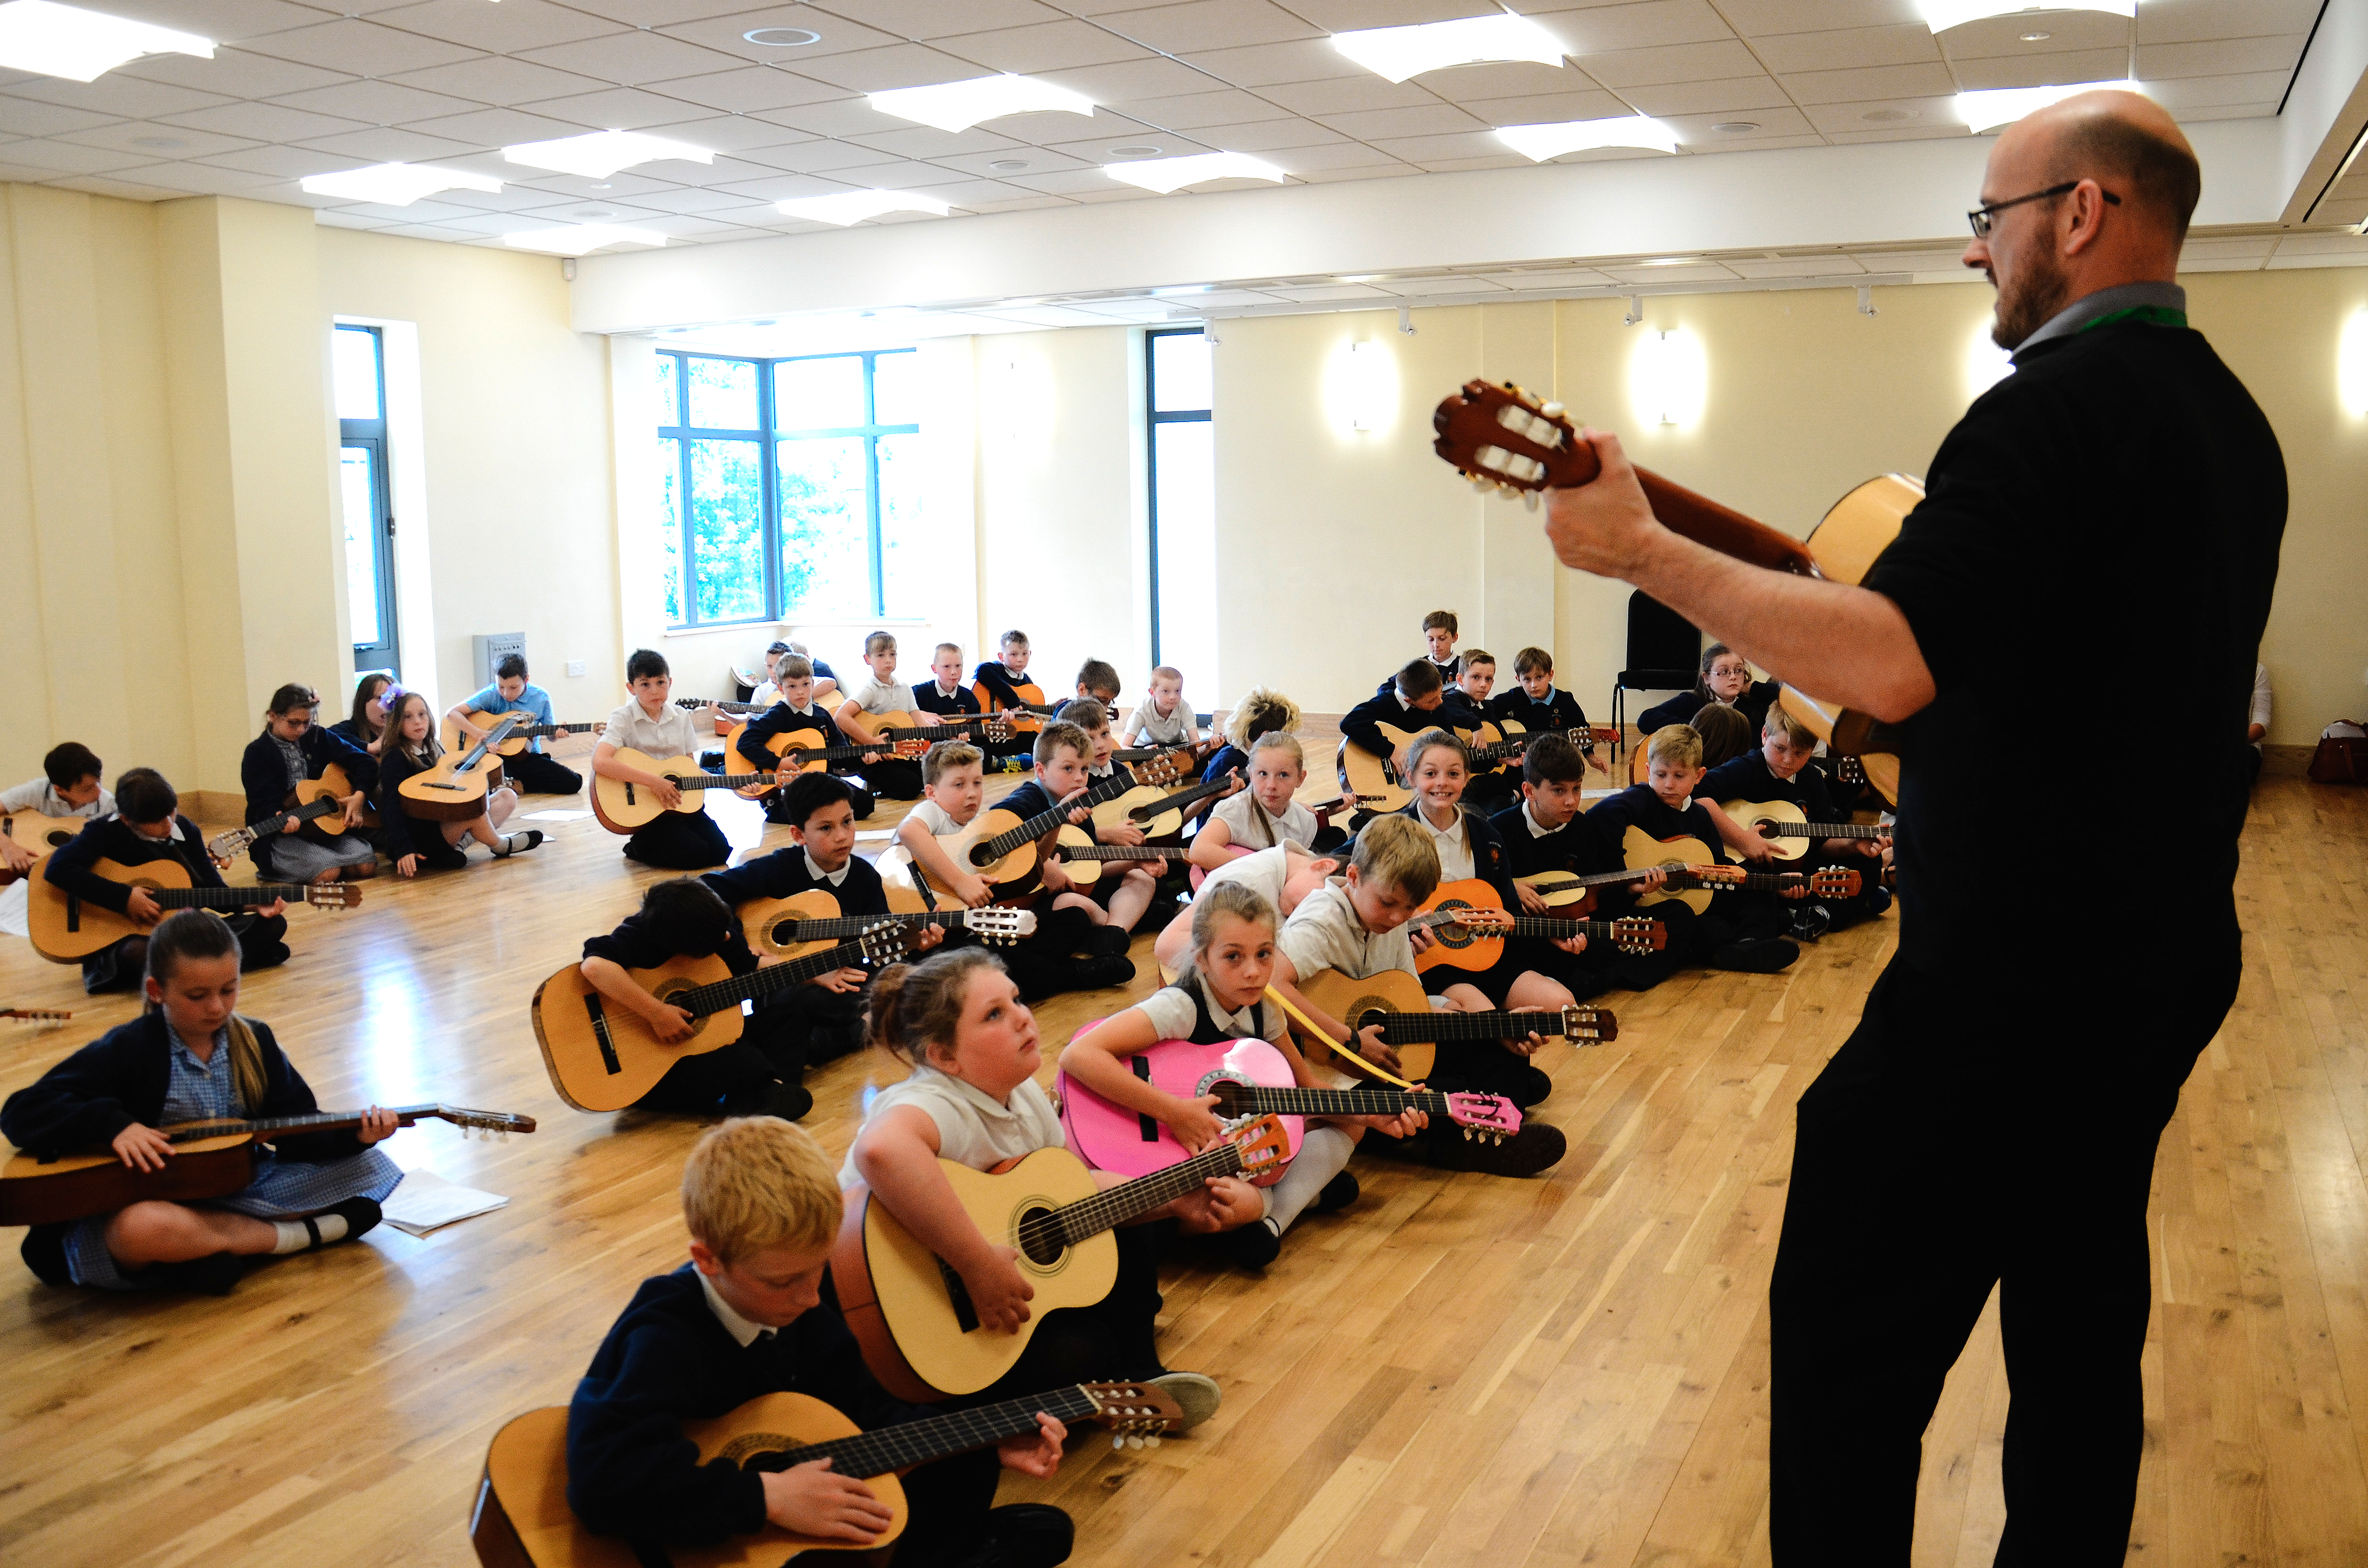 photo of guitar teacher teaching a whole class of students with guitars